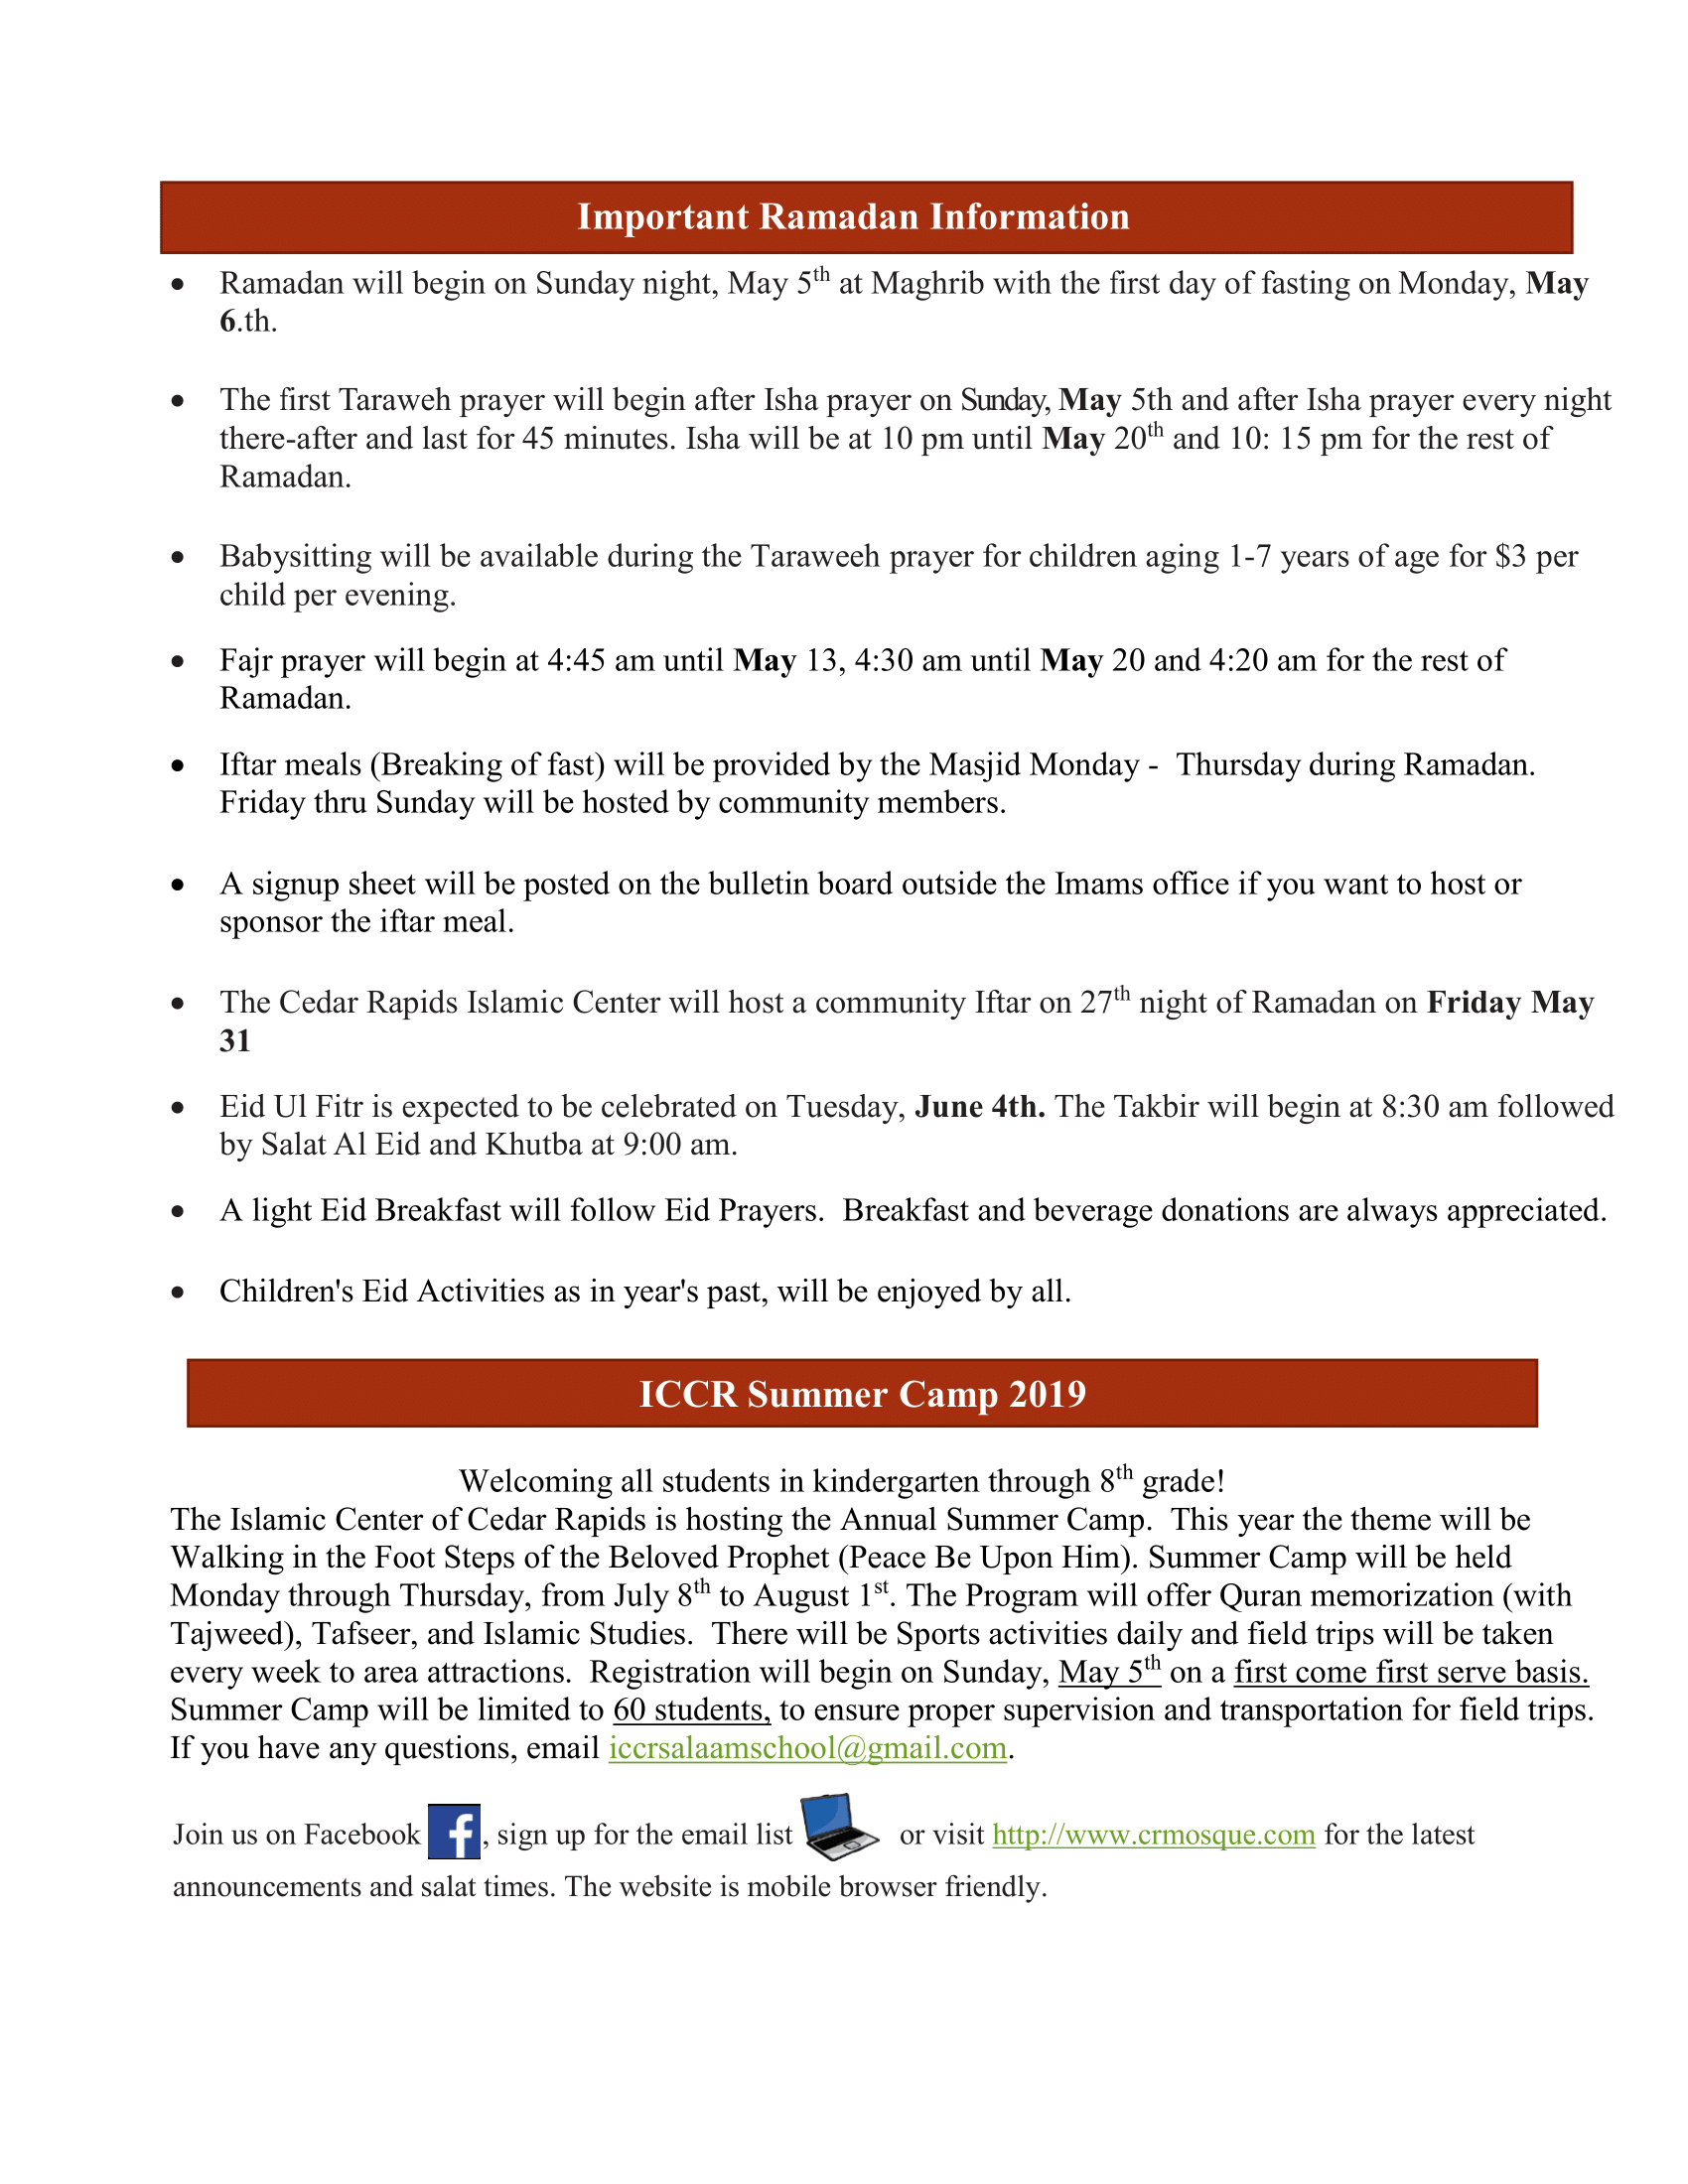 ICCR_Ramadan_2019_Newsletter_Revised-3.png